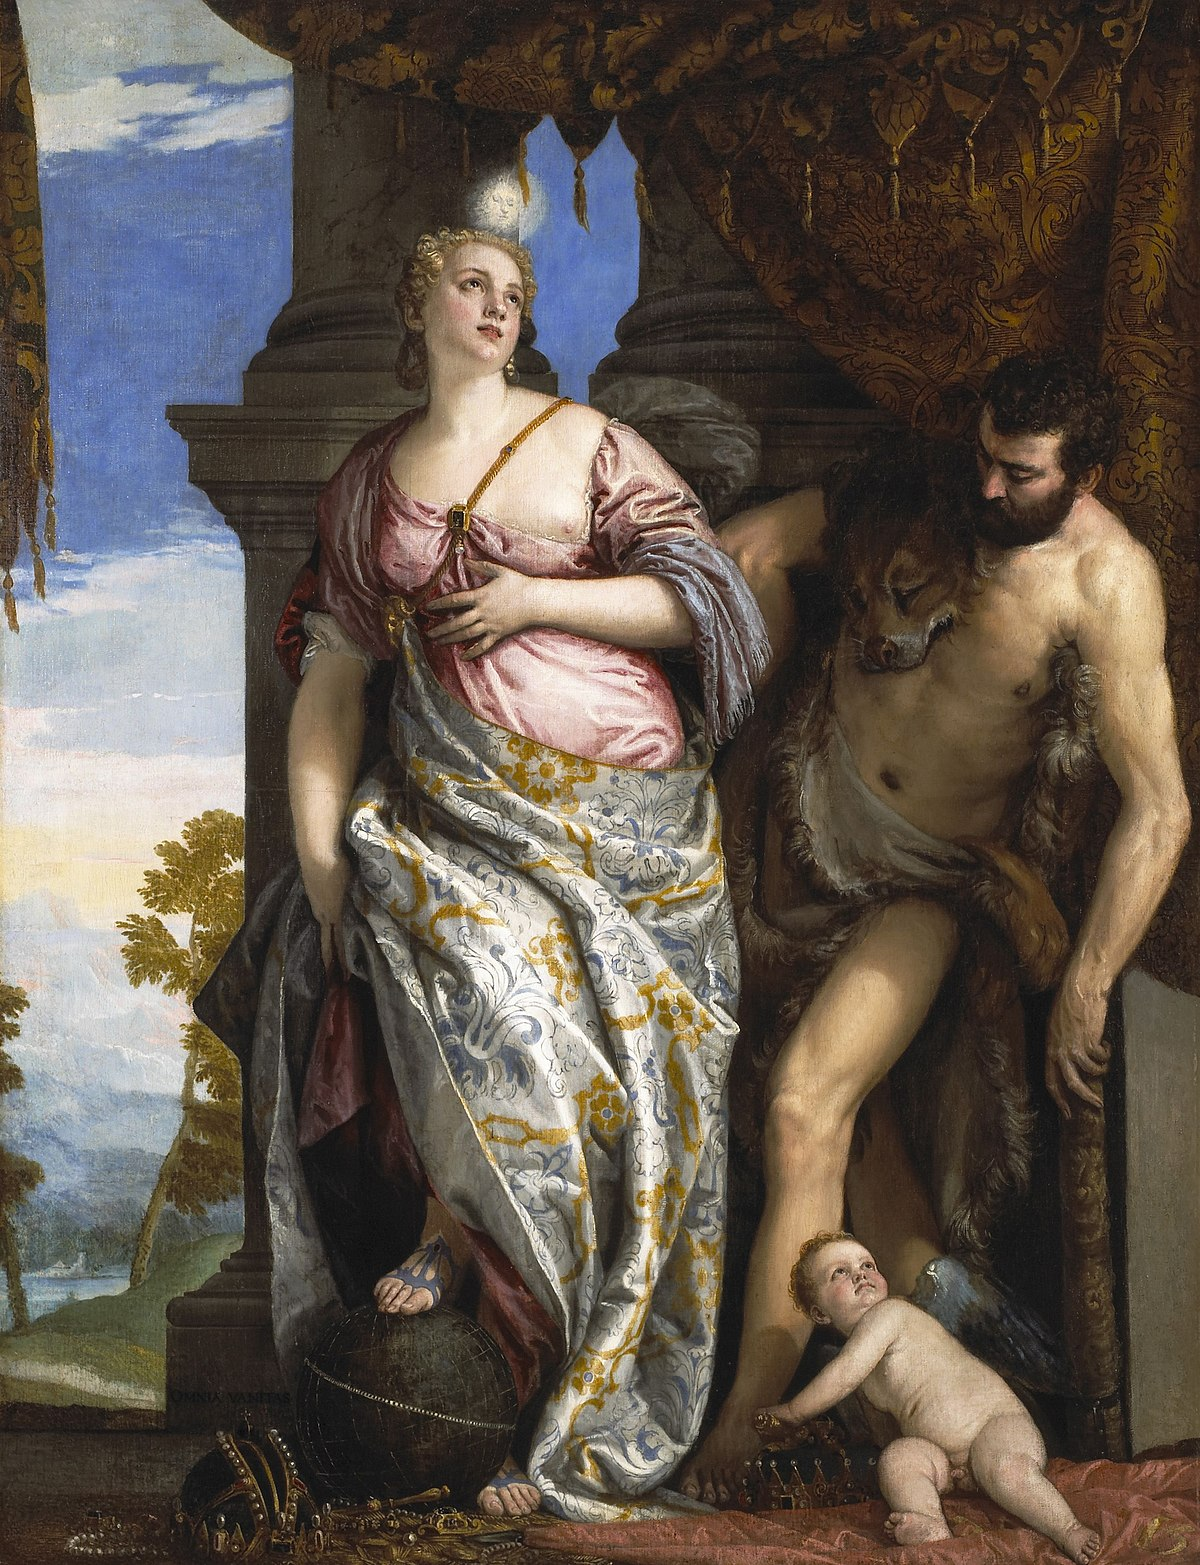 paolo veronese mars and venus united by love